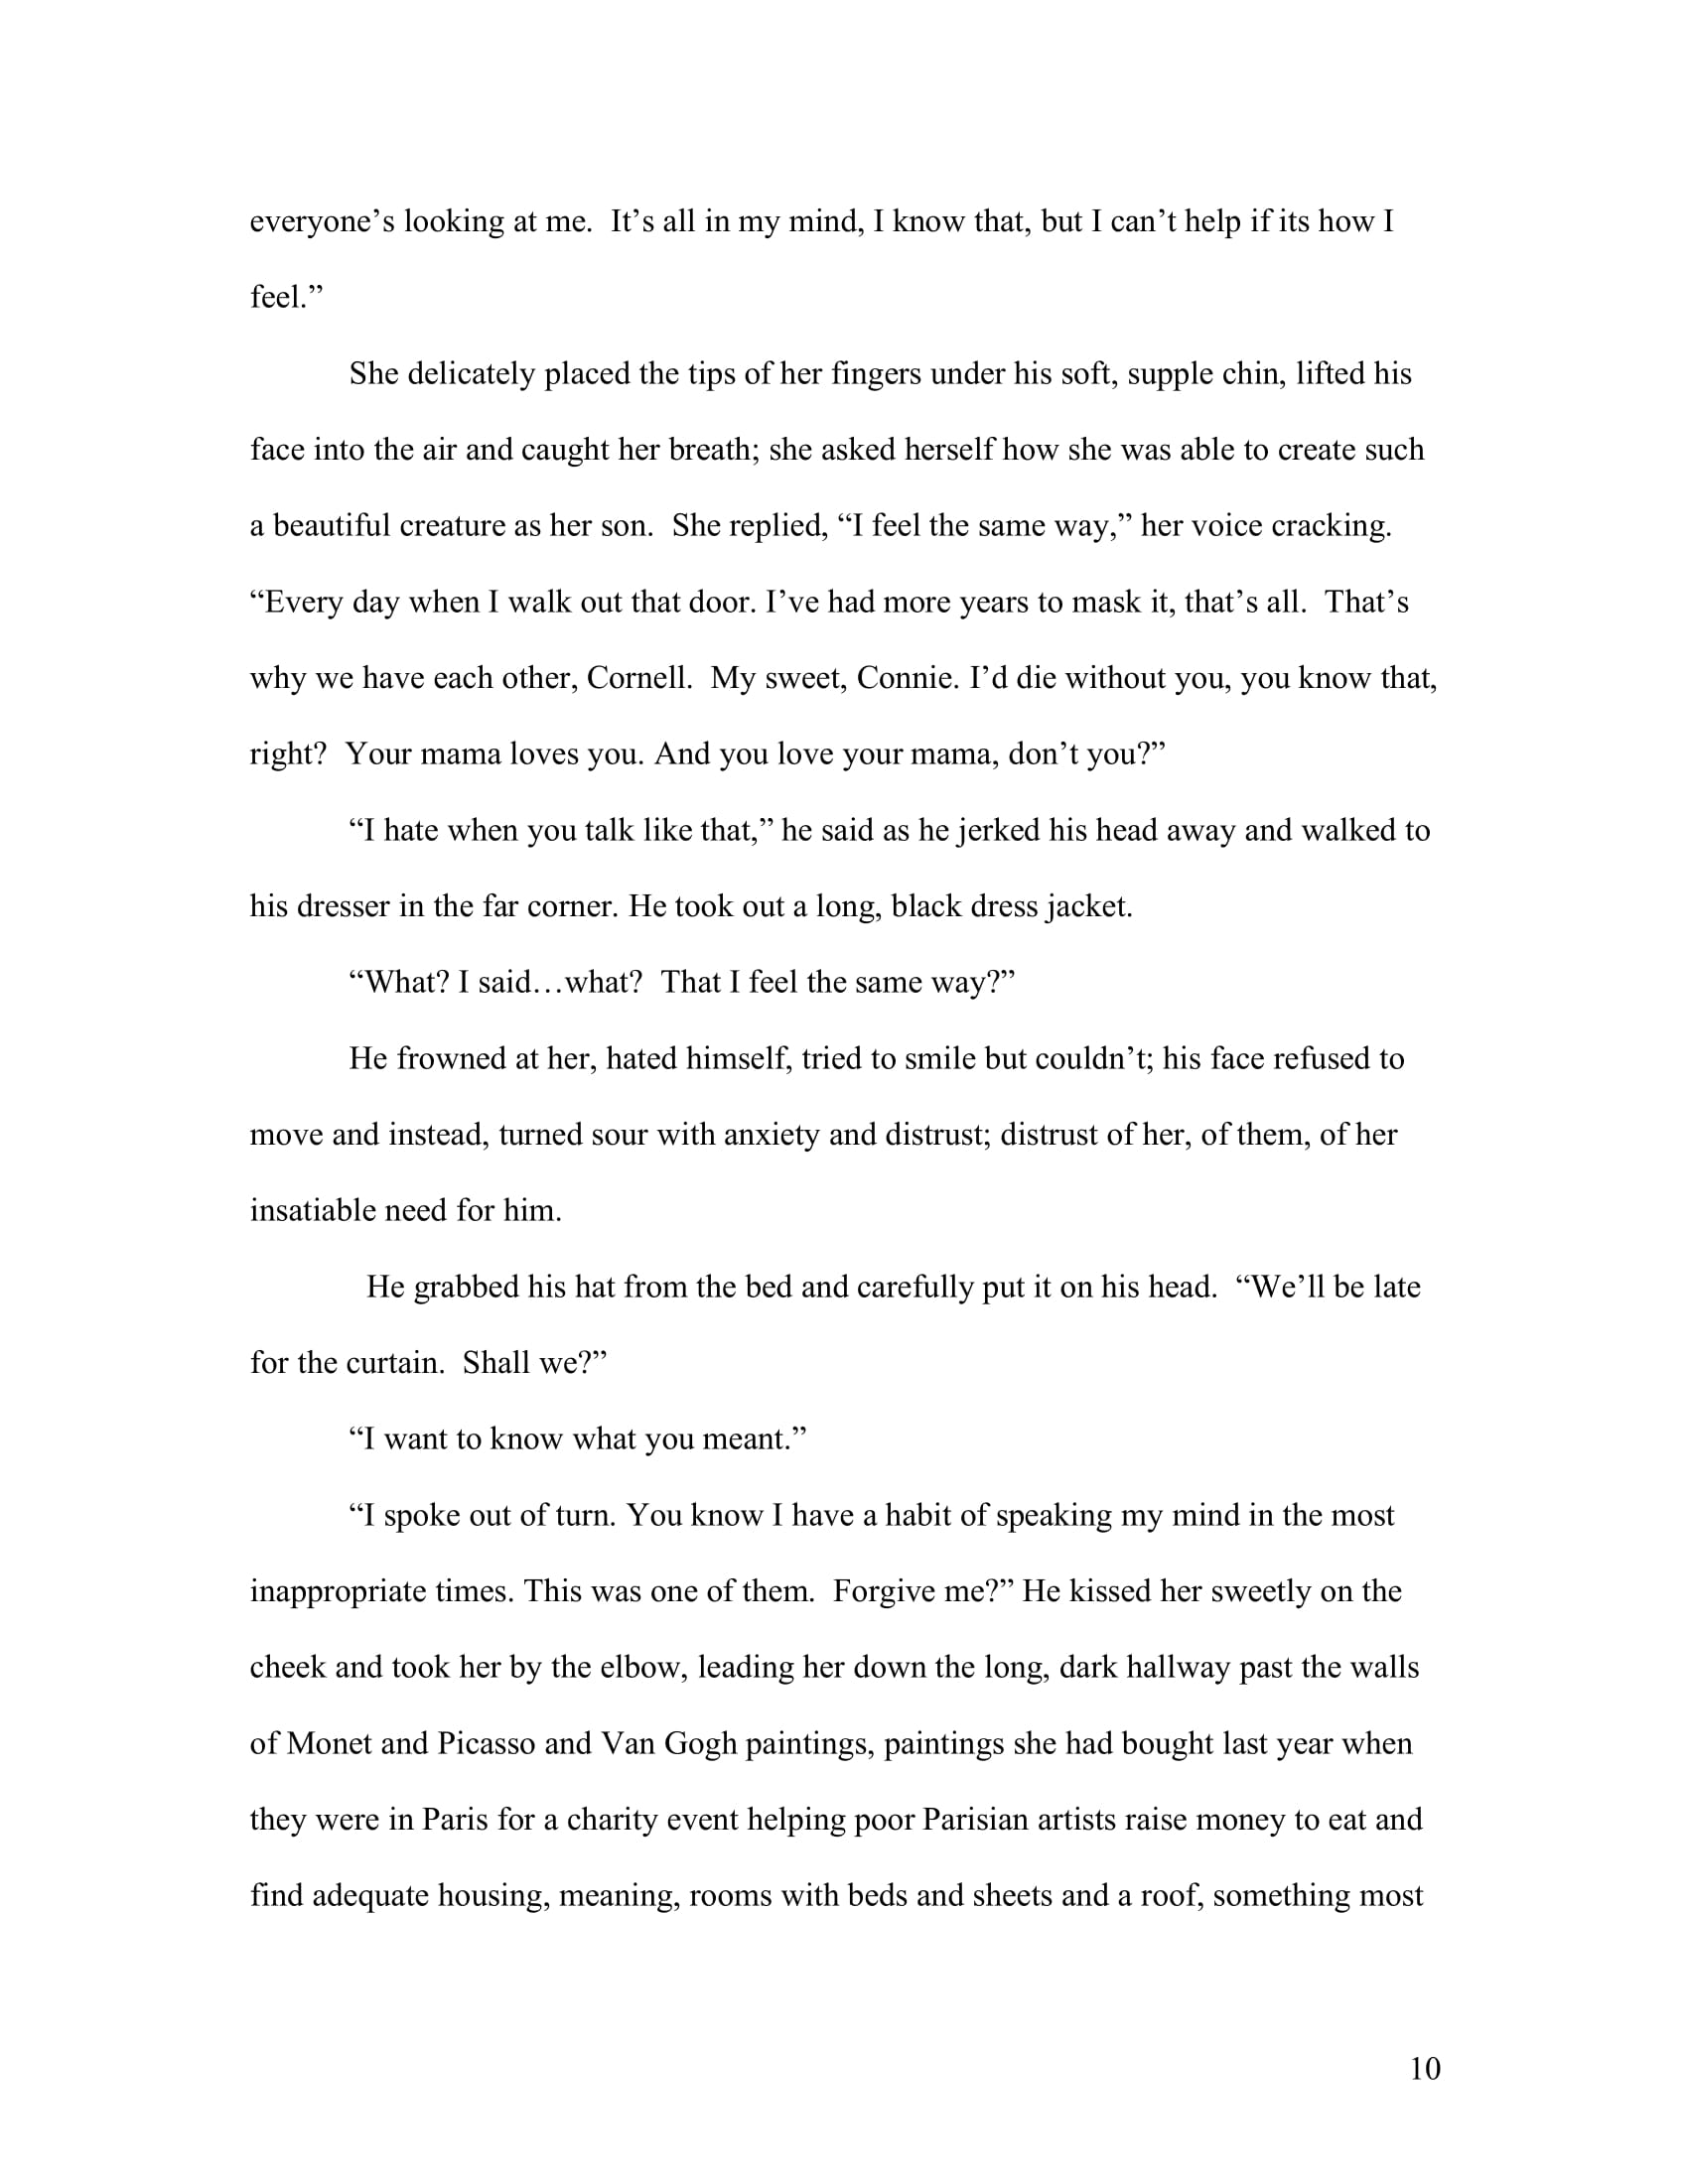 MichaelCBryan_BlackAngel_TheNovel_FirstChapter-10.jpg